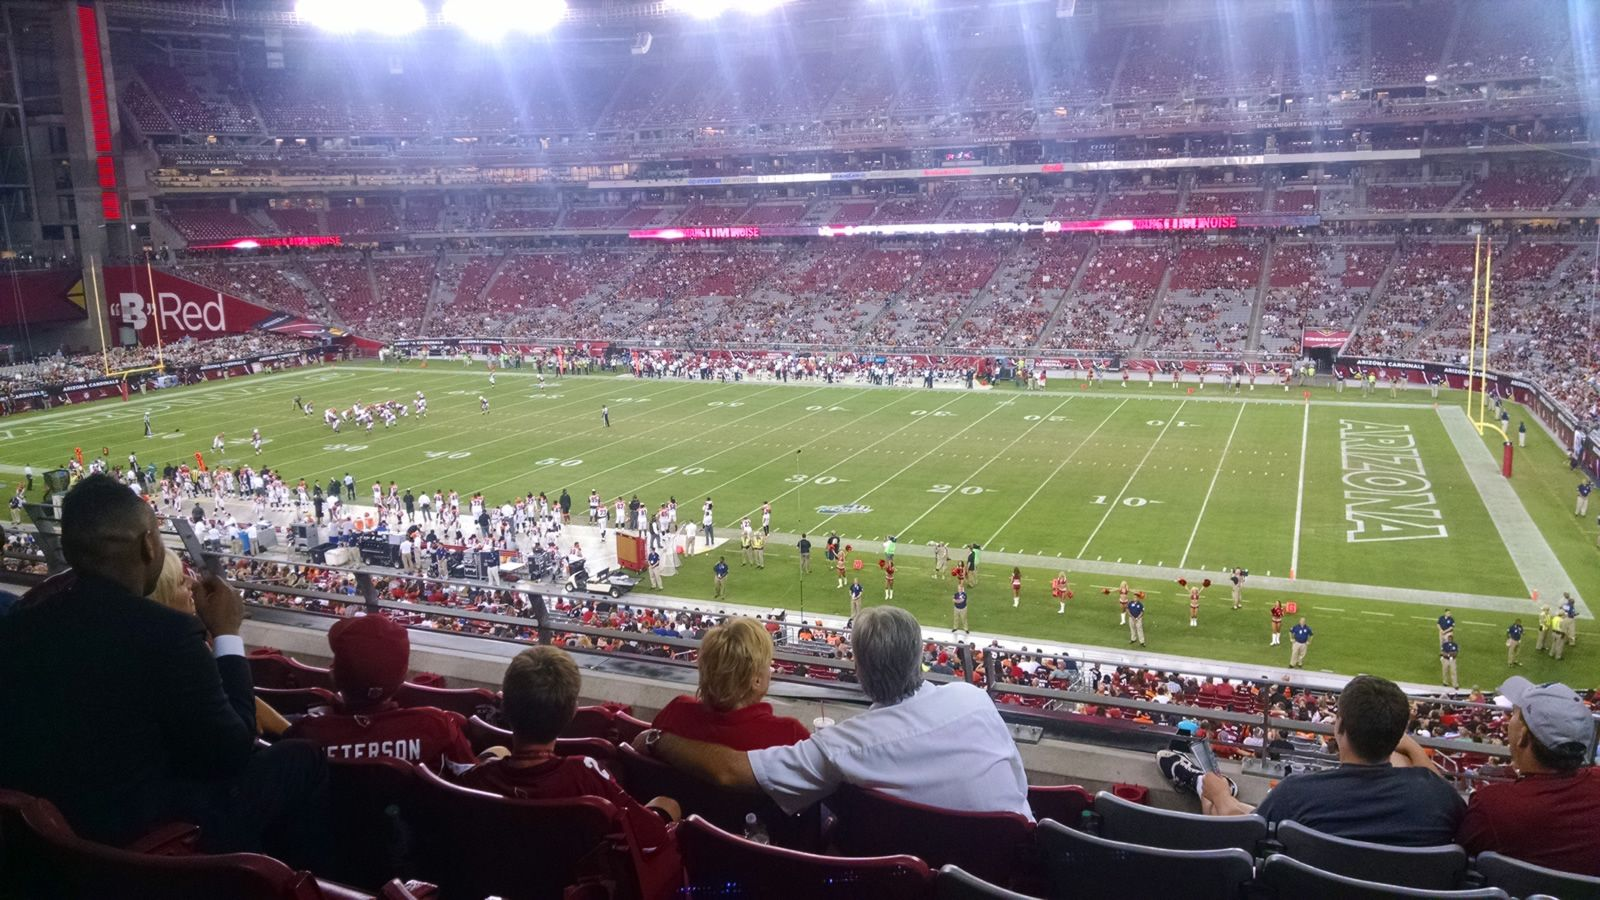 Section 233 seat view